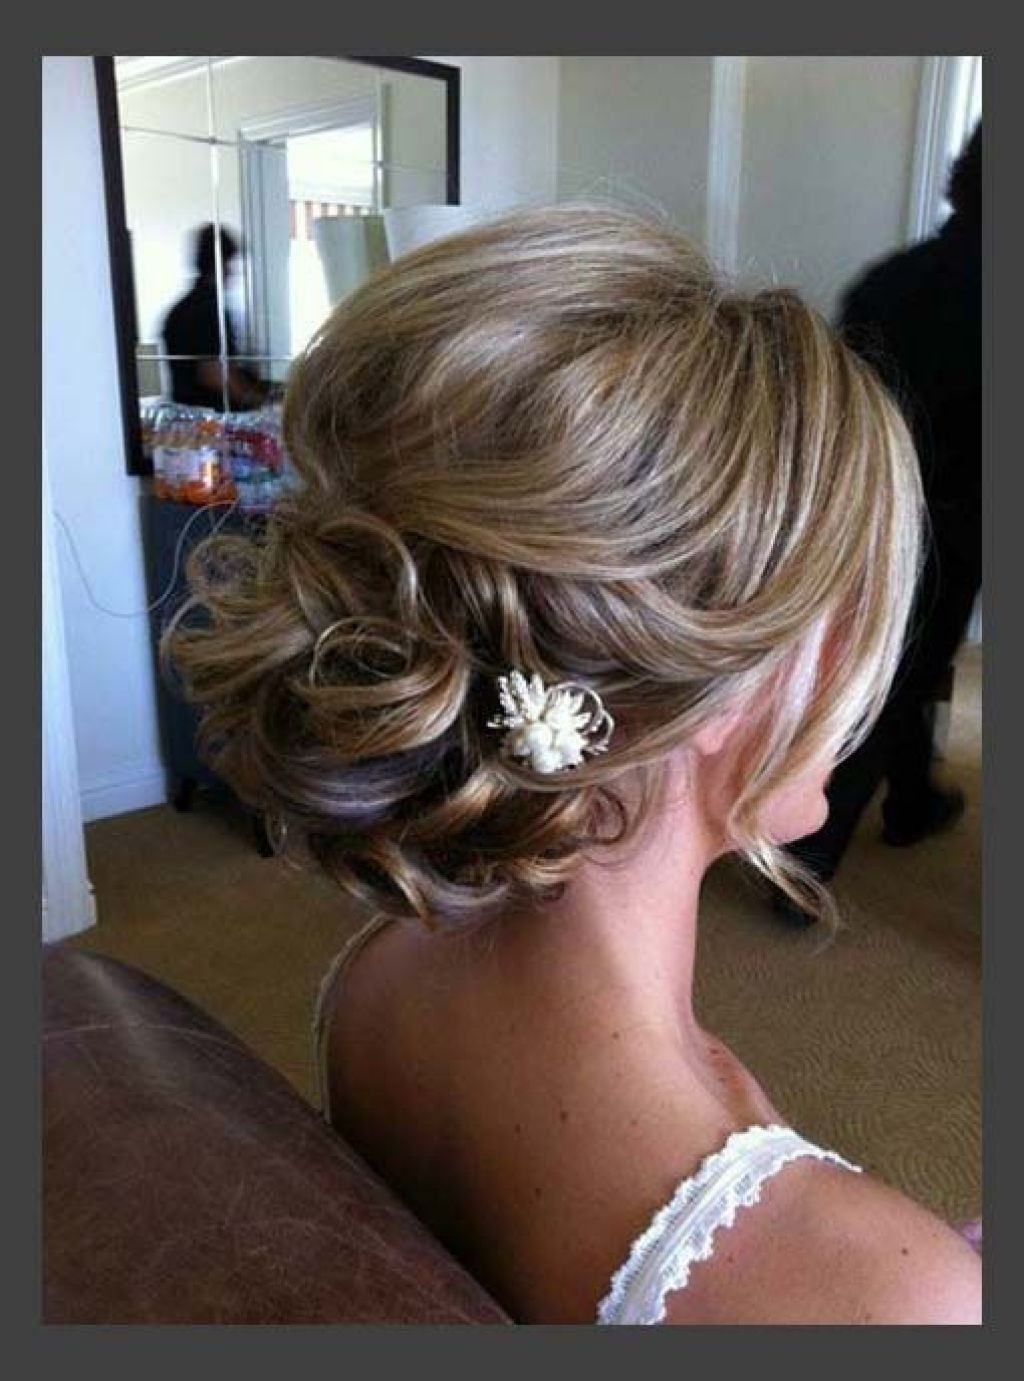 Bridesmaid Hairstyles For Medium Length Hair – Hairstyle For Women & Man Inside Most Popular Wedding Hairstyles For Medium Length With Blonde Hair (View 4 of 15)